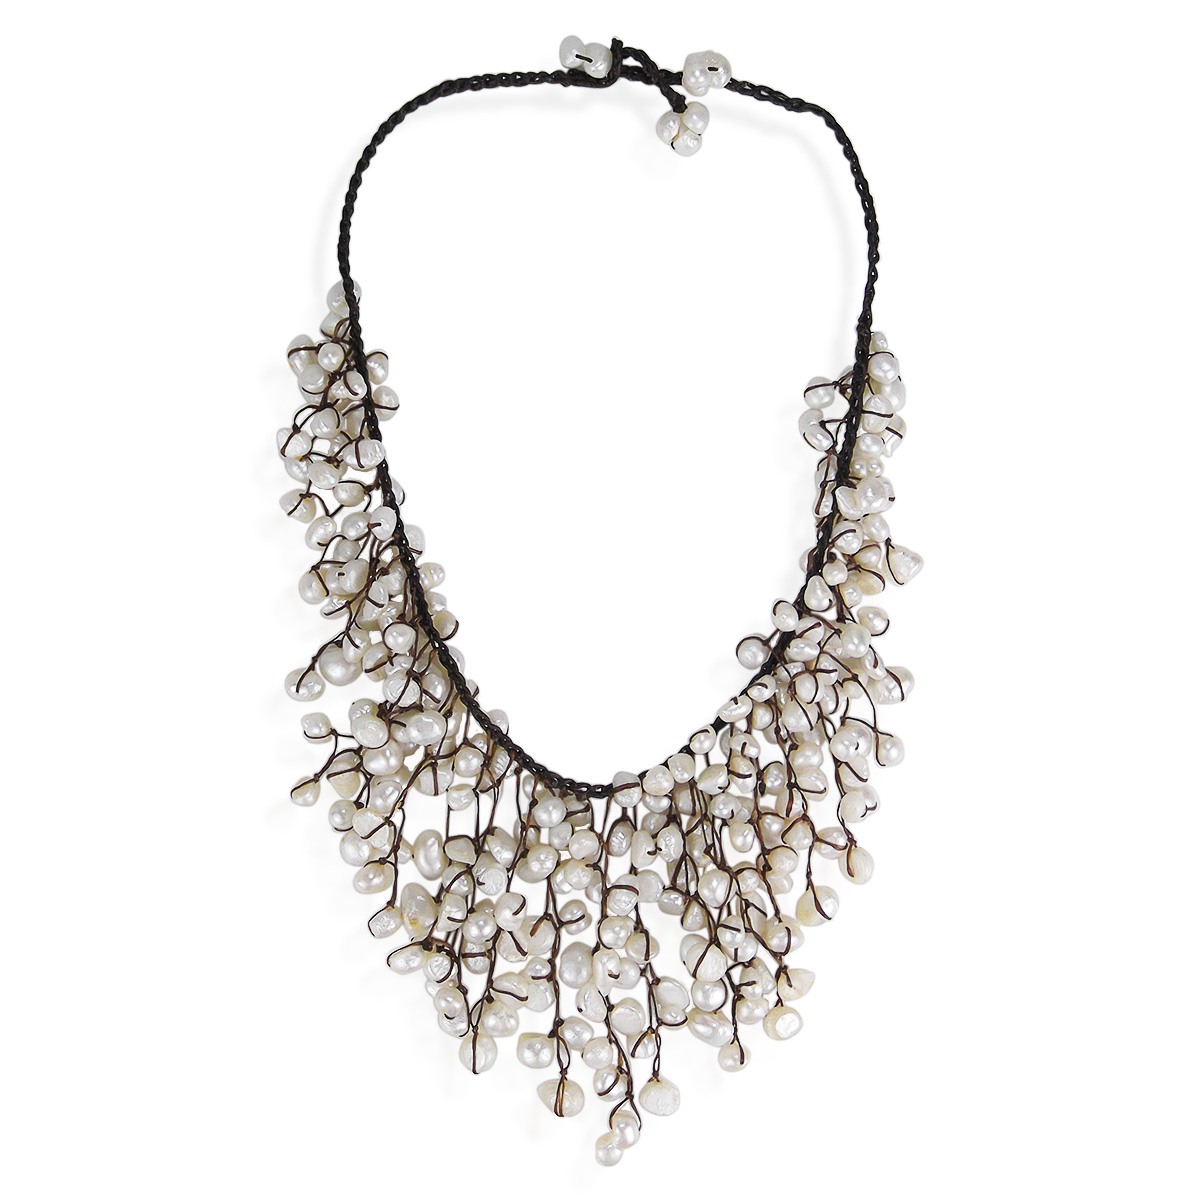 nugget s julius slate larrimor waterfall necklace in and crystal feature gillian